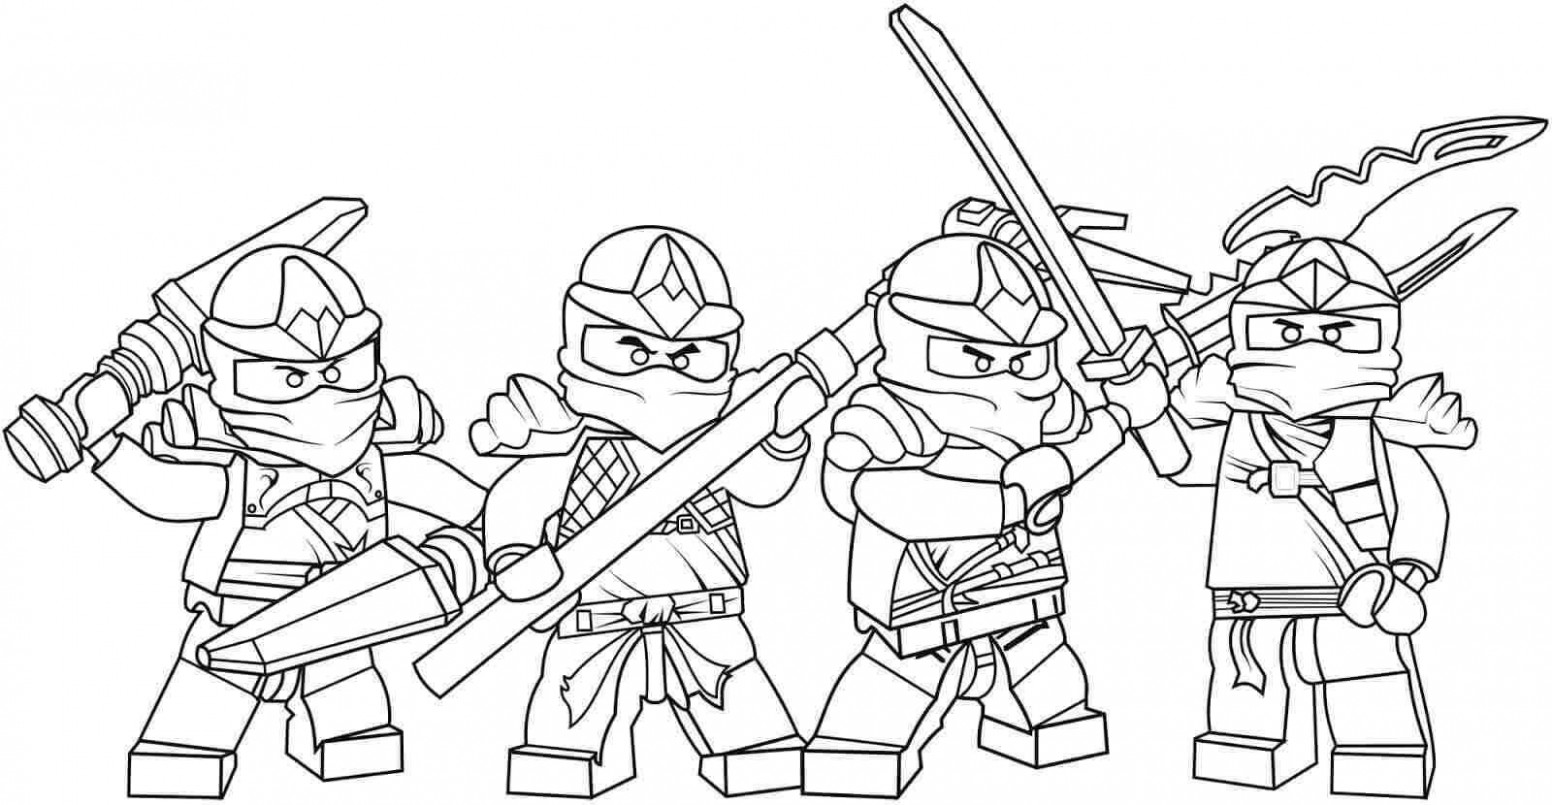 Ninjago Coloring Pages Free 17 With Ninjago Coloring Pages Free ...